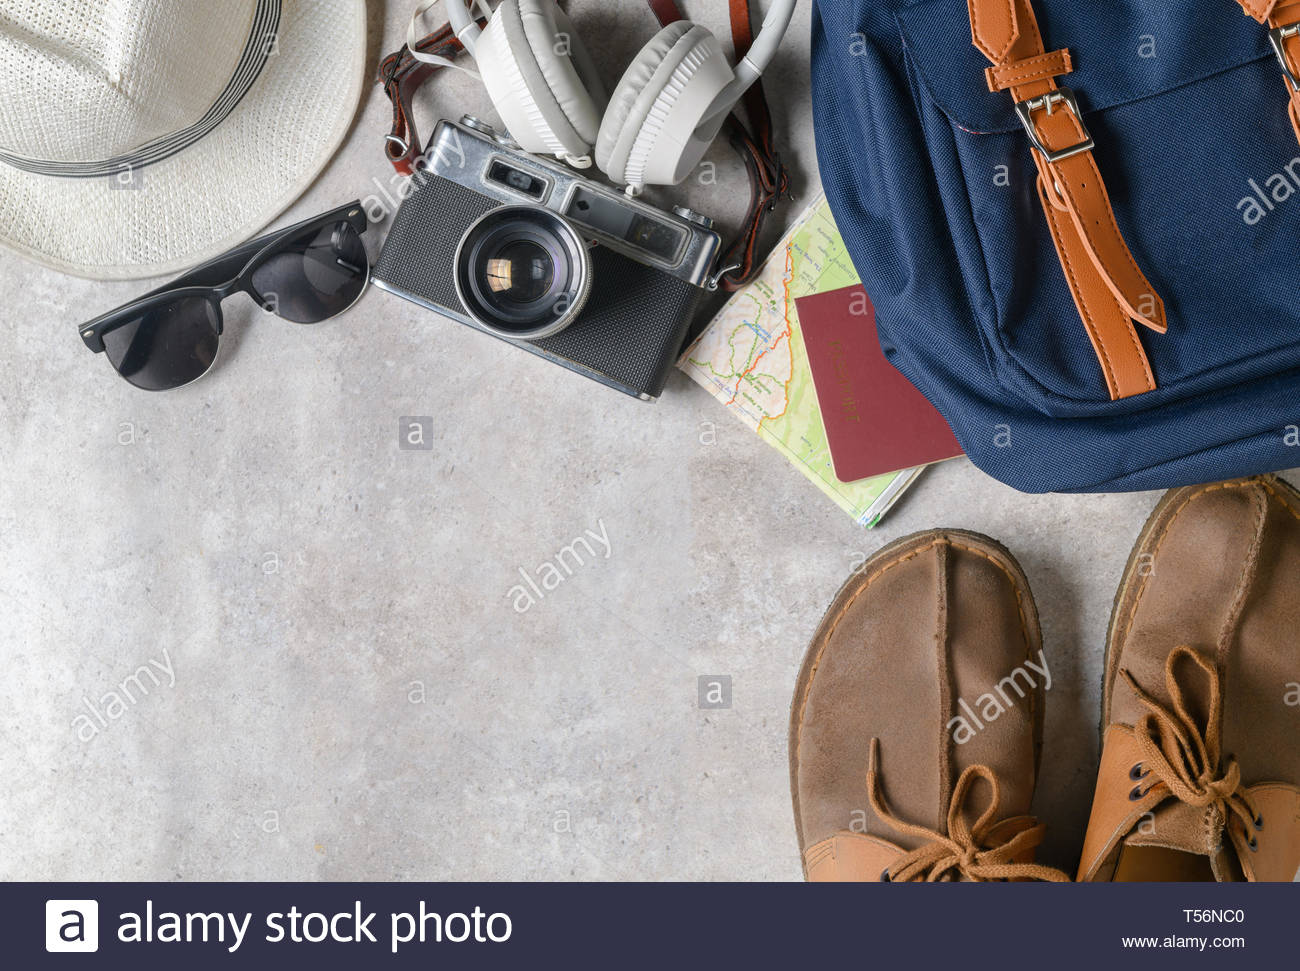 prepare backpack accessories and travel items on marble background 1300x971